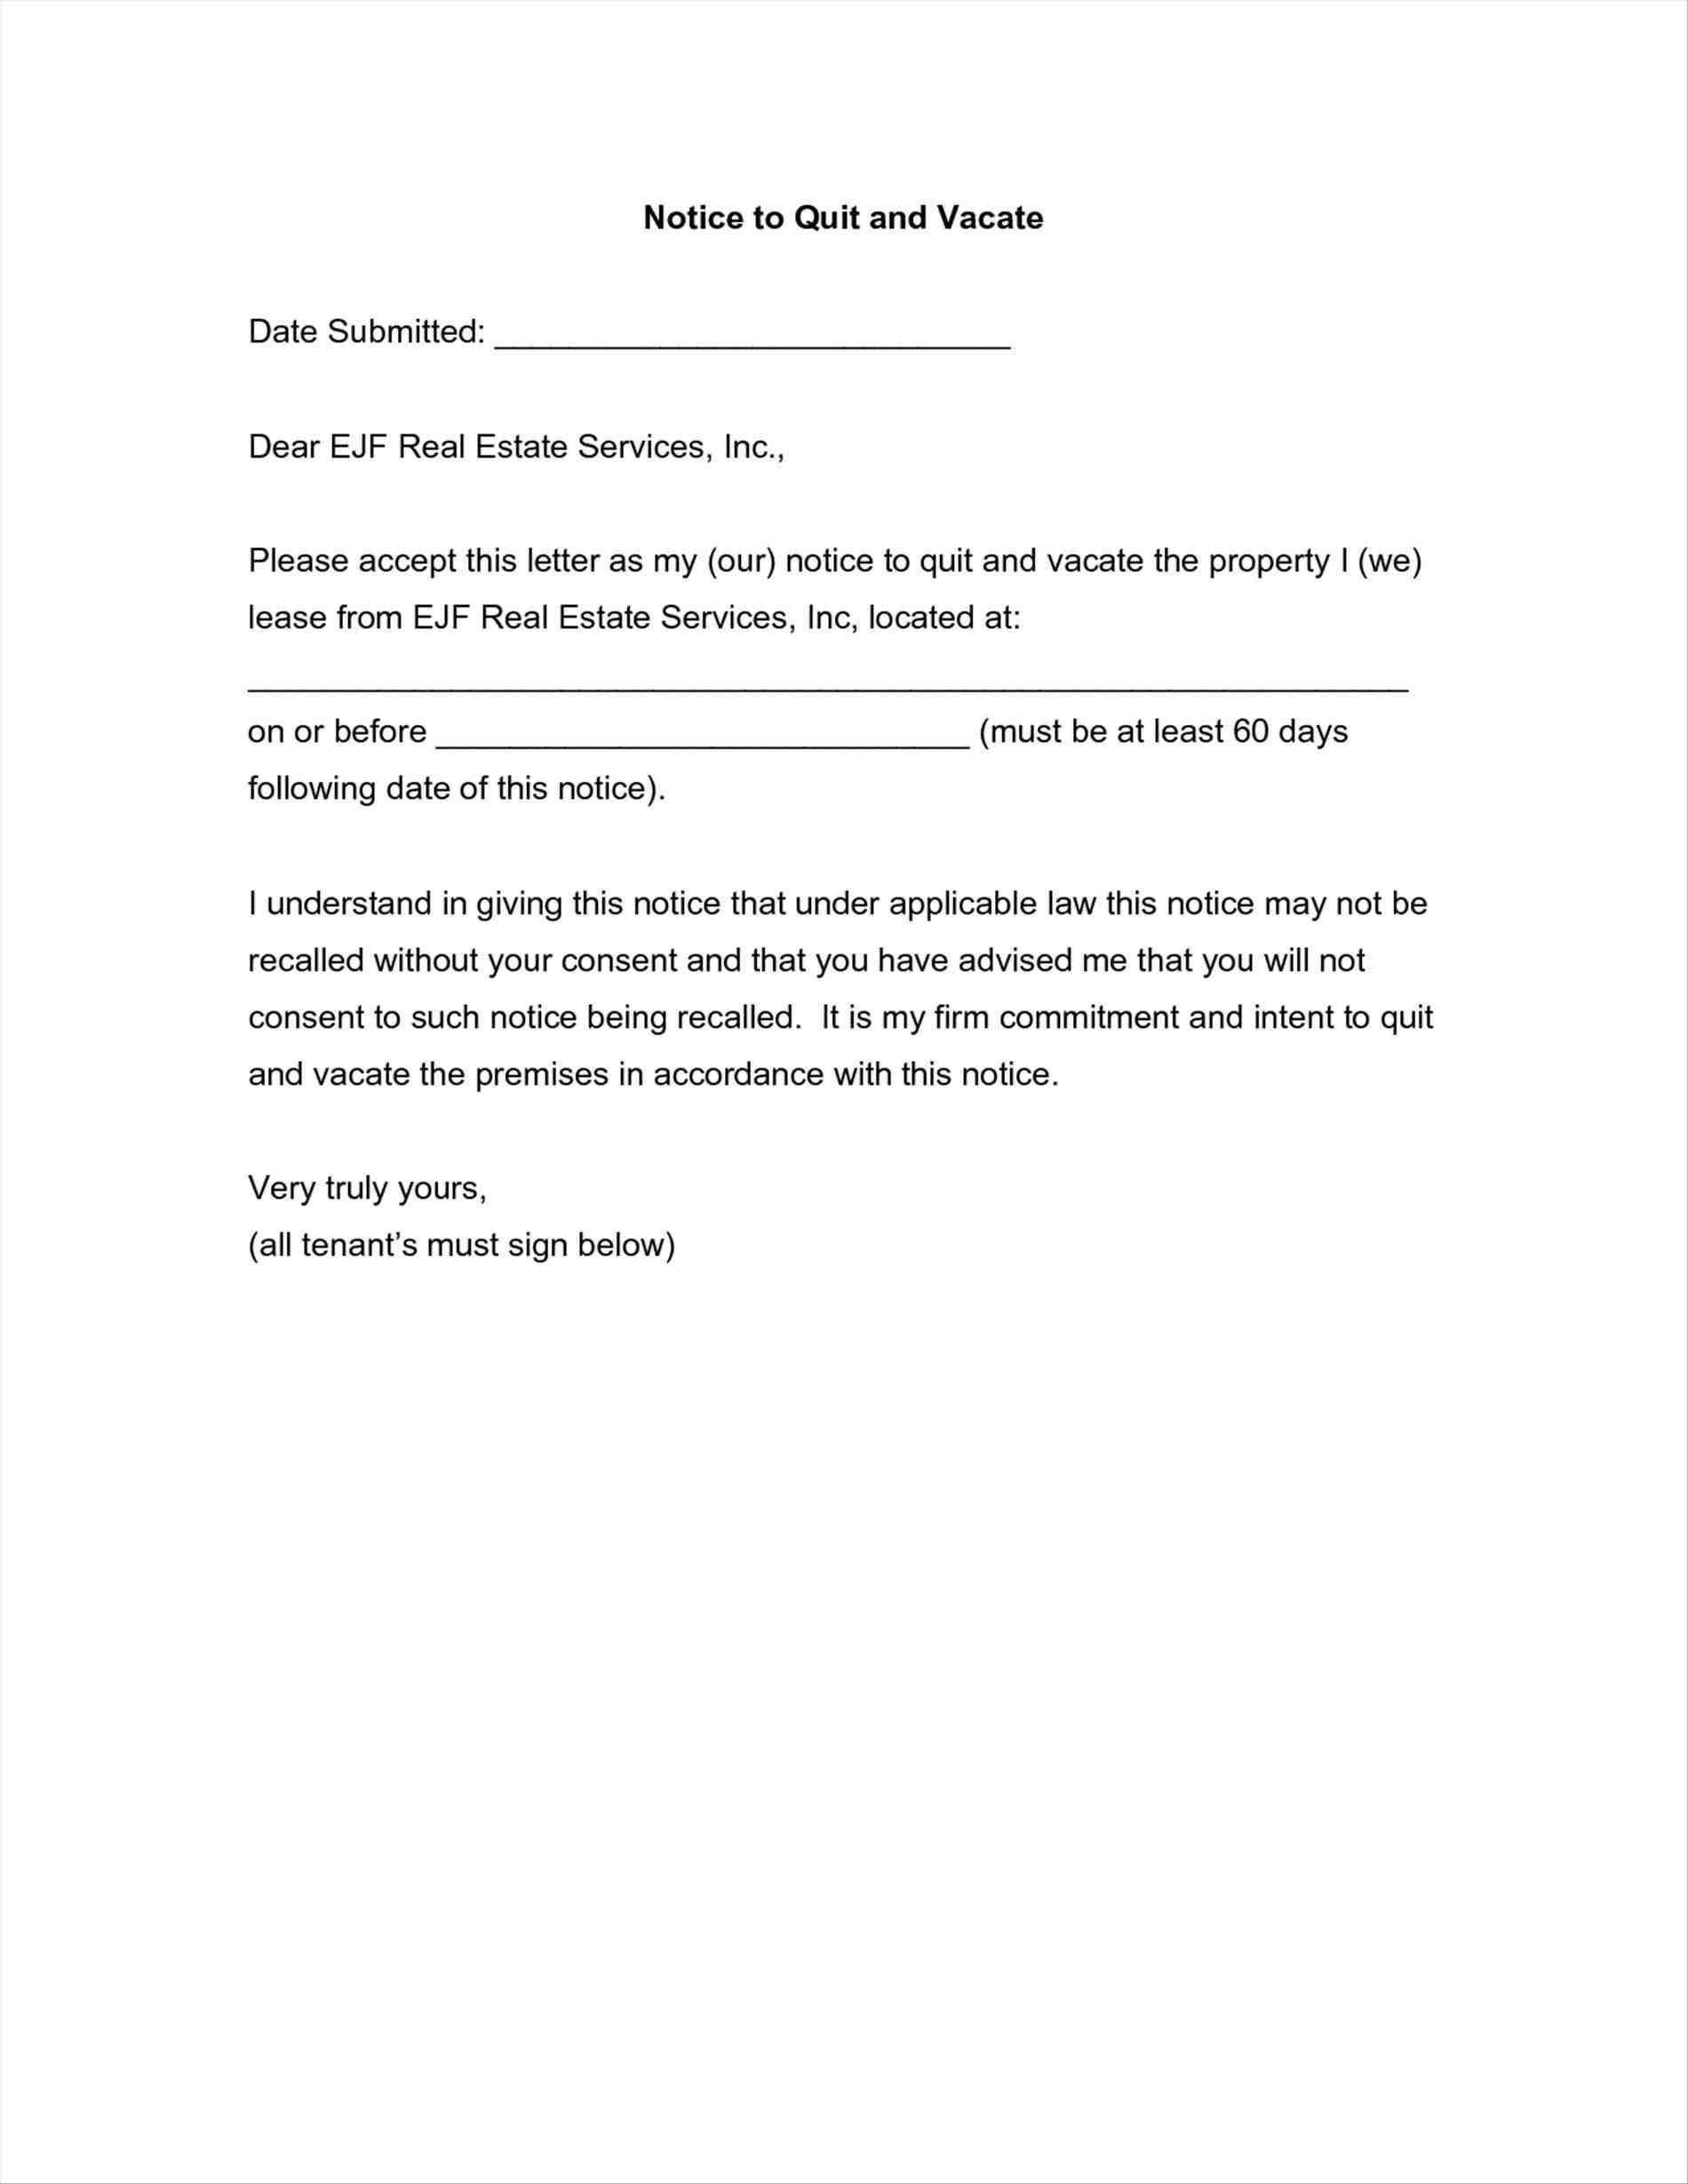 Tenancy Notice Letter Template - Template for 60 Day Notice to Vacate